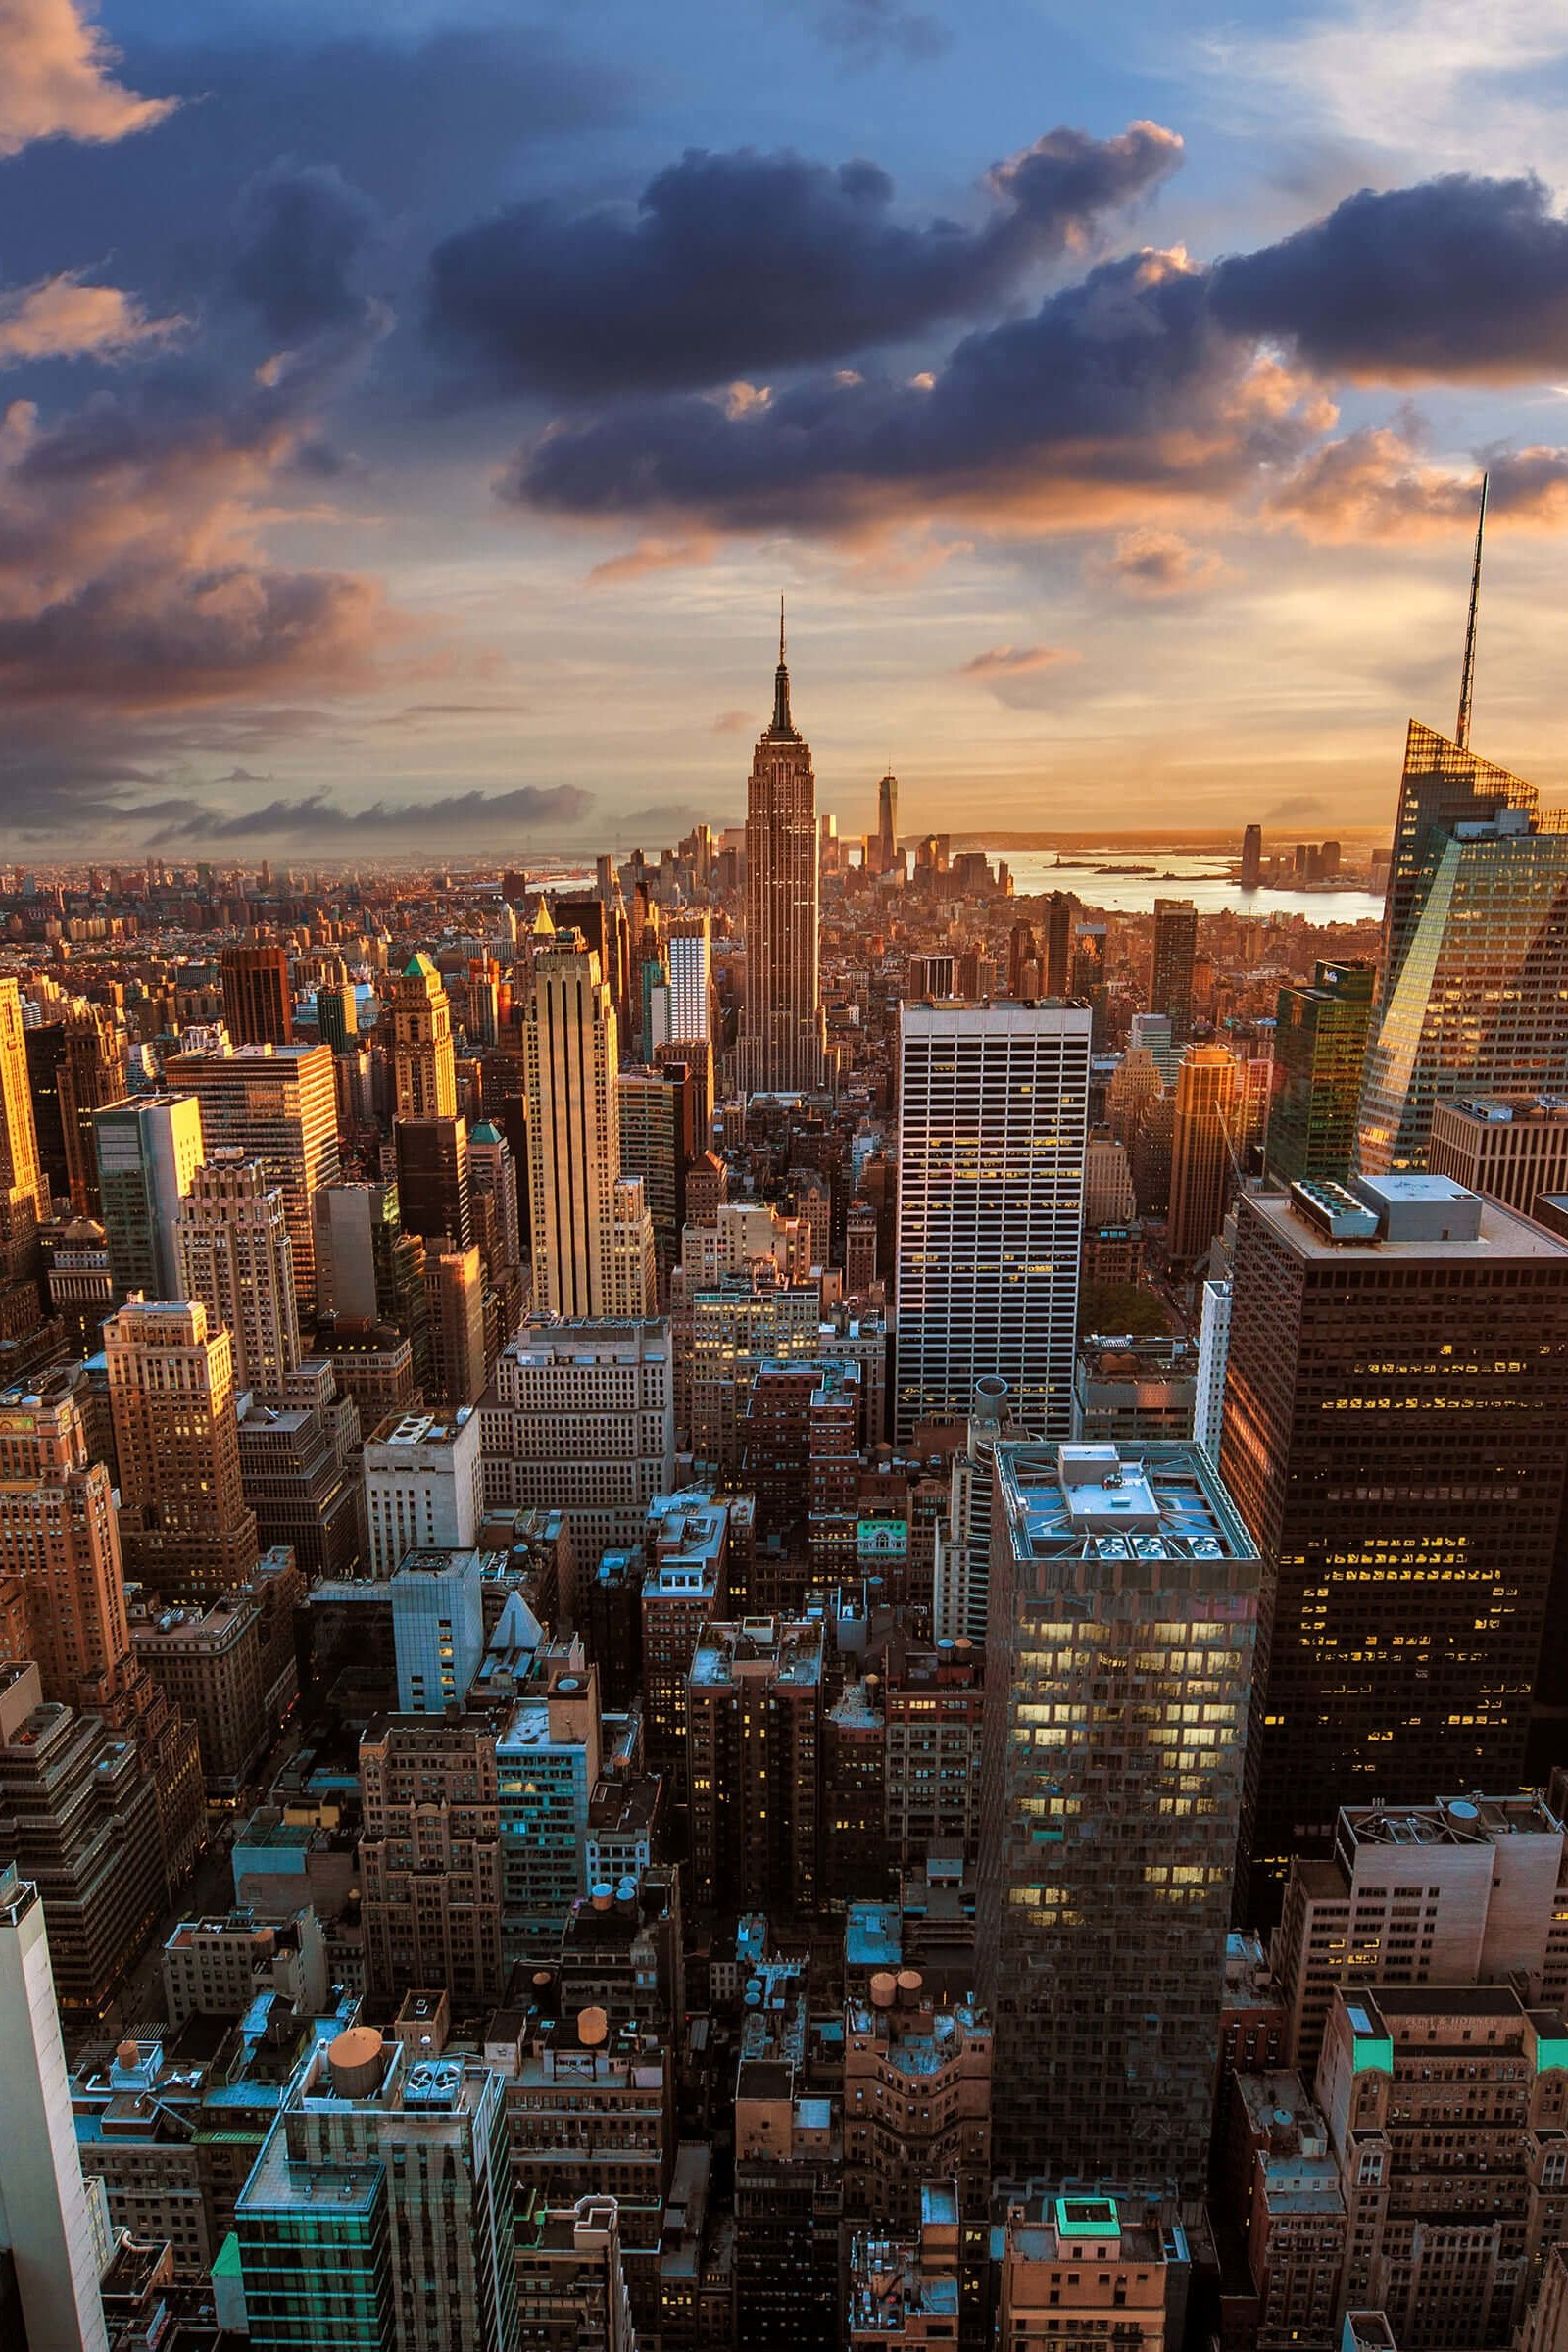 download new york city skyline at sunset hd wallpaper for kindle fire